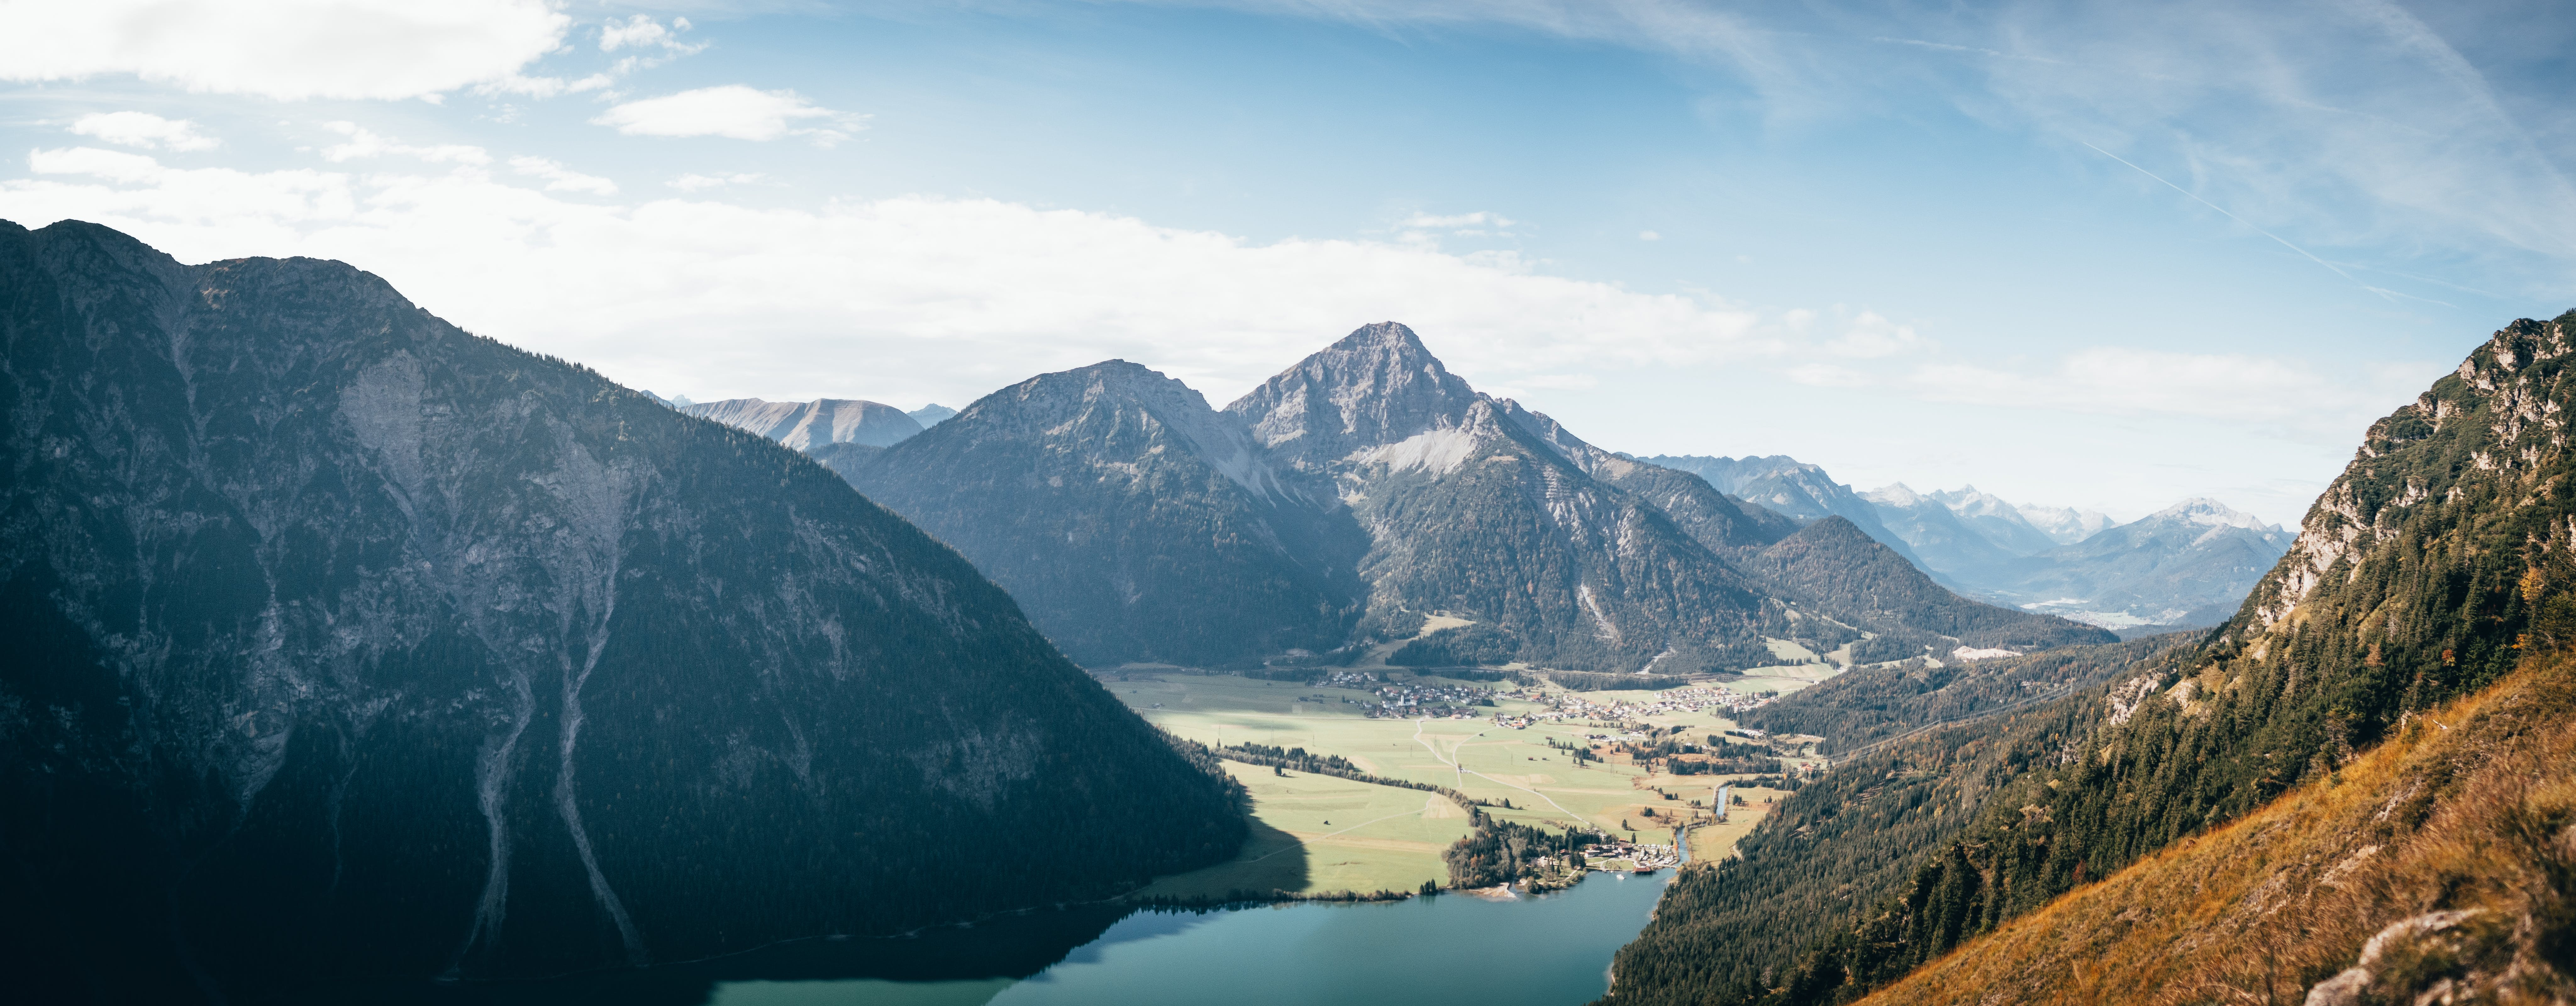 Aerial Photography of Mountain and Body of Water